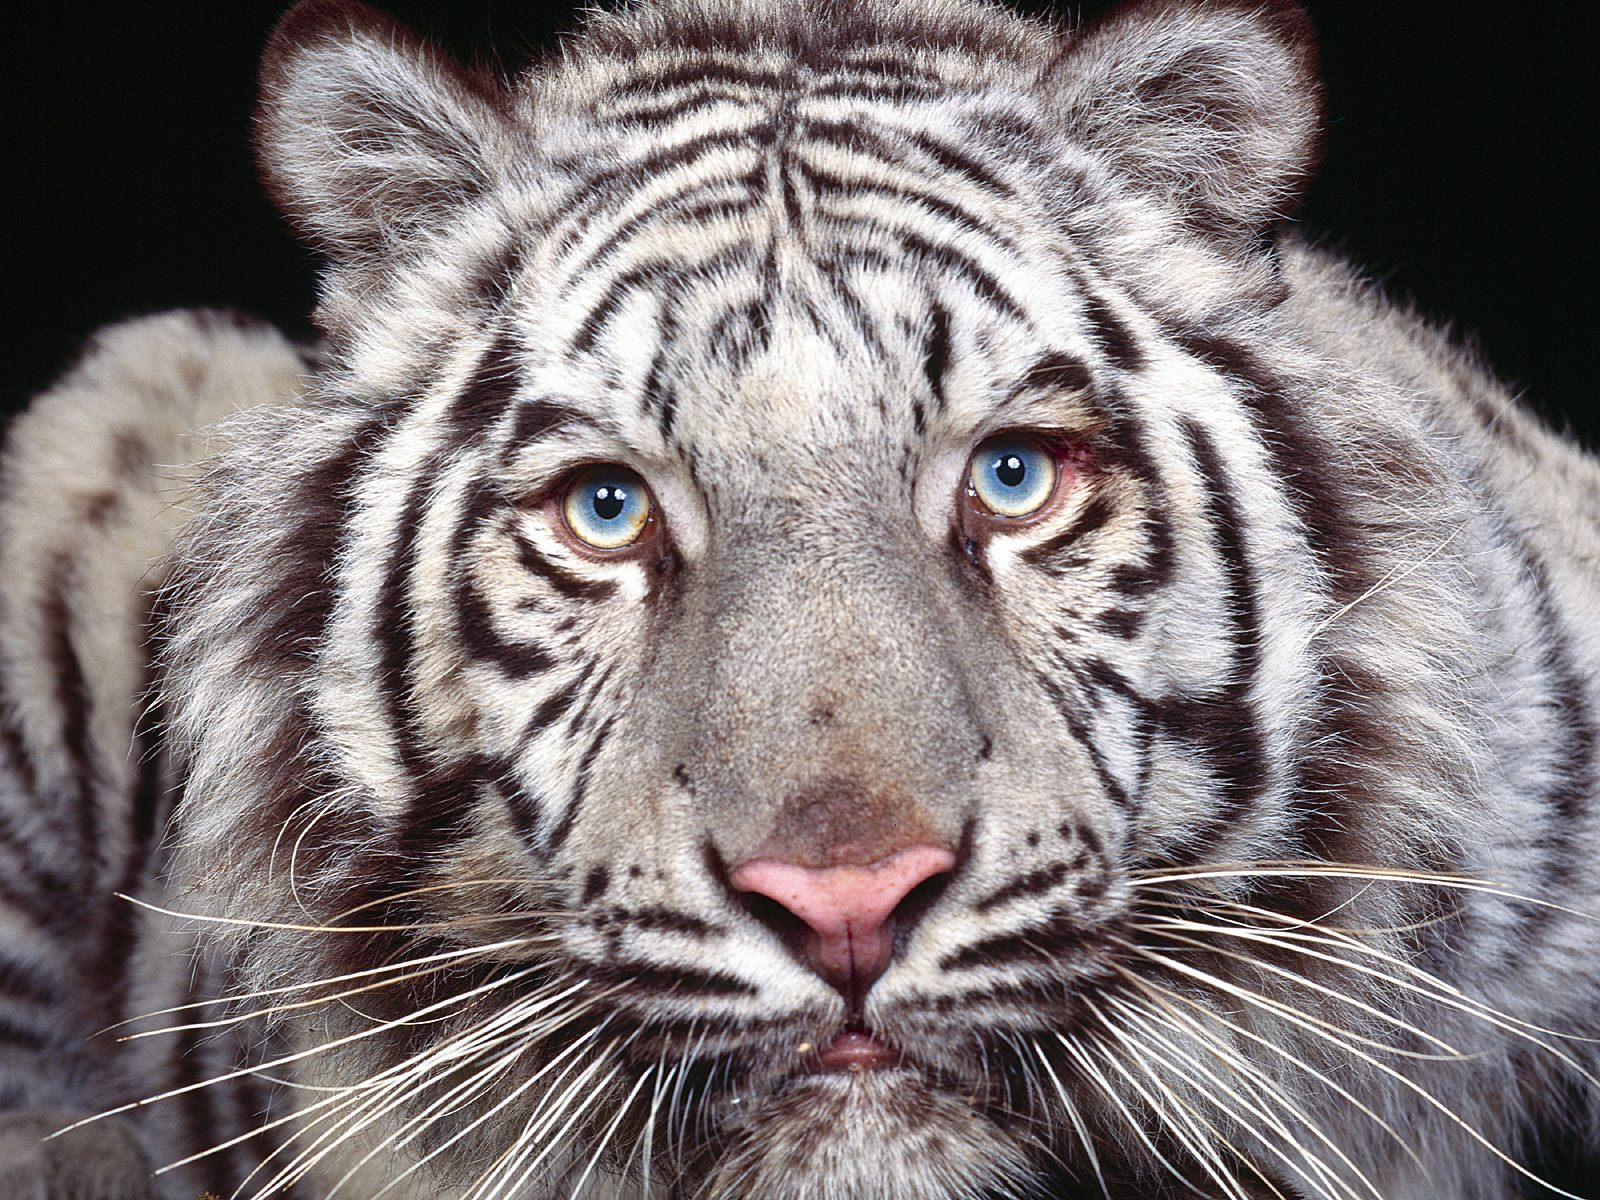 White bengal tiger wallpapers - photo#23